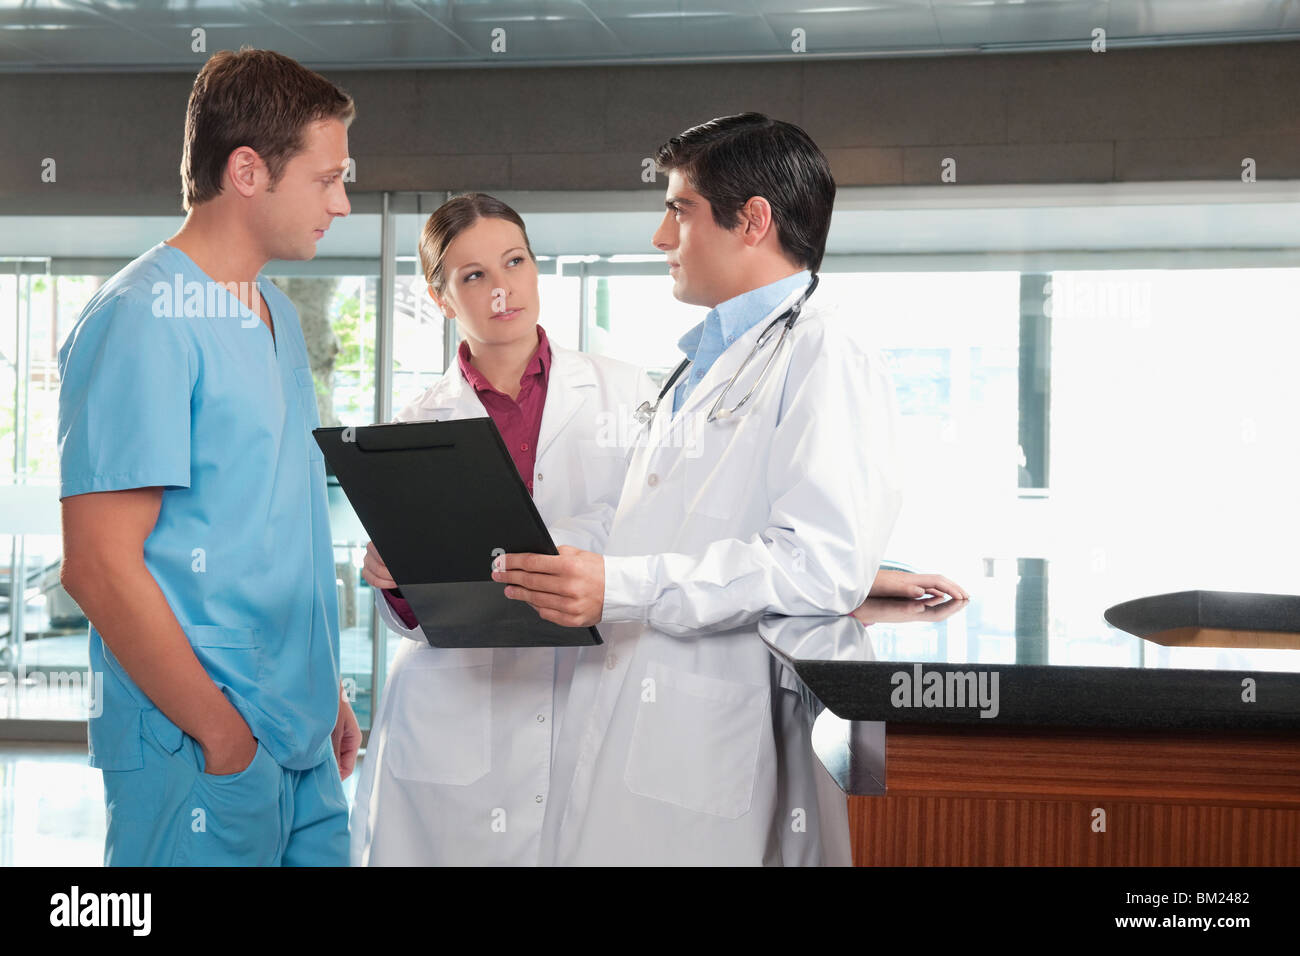 Three doctors discussing a medical report - Stock Image